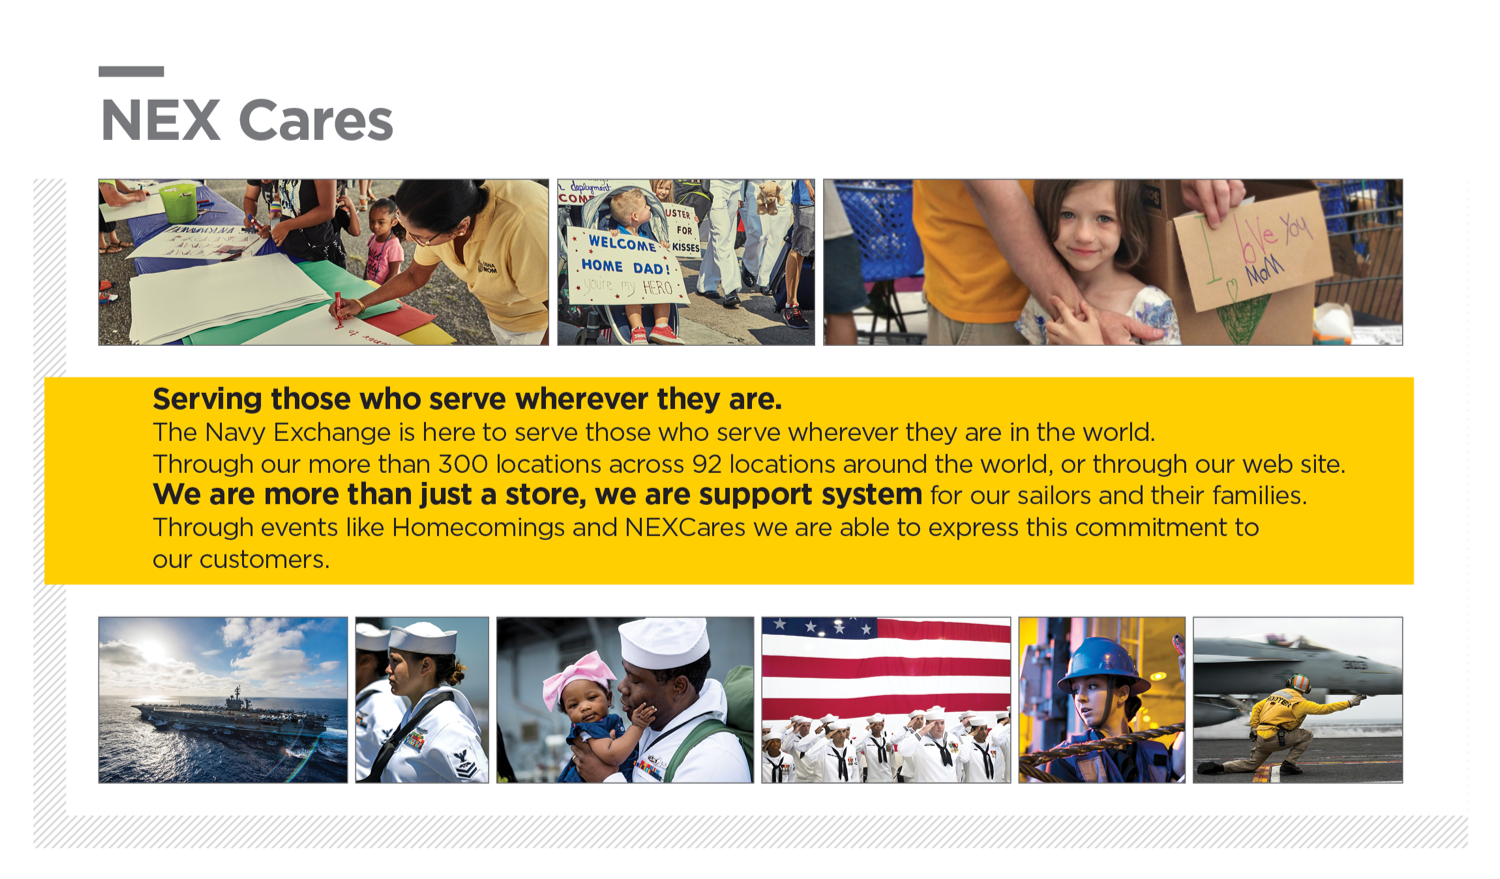 NEX Cares. Serving those who server wherever they are. The Navy Exchange is here to server those who serve wherever they are in the world. Through our more than 300 locations across 92 locations around the world, or through our web site. We are more than just a store, we are a support system for our sailors and their families. Through events like Homecomings and NEXCares we are able to express this commitment to our customers.